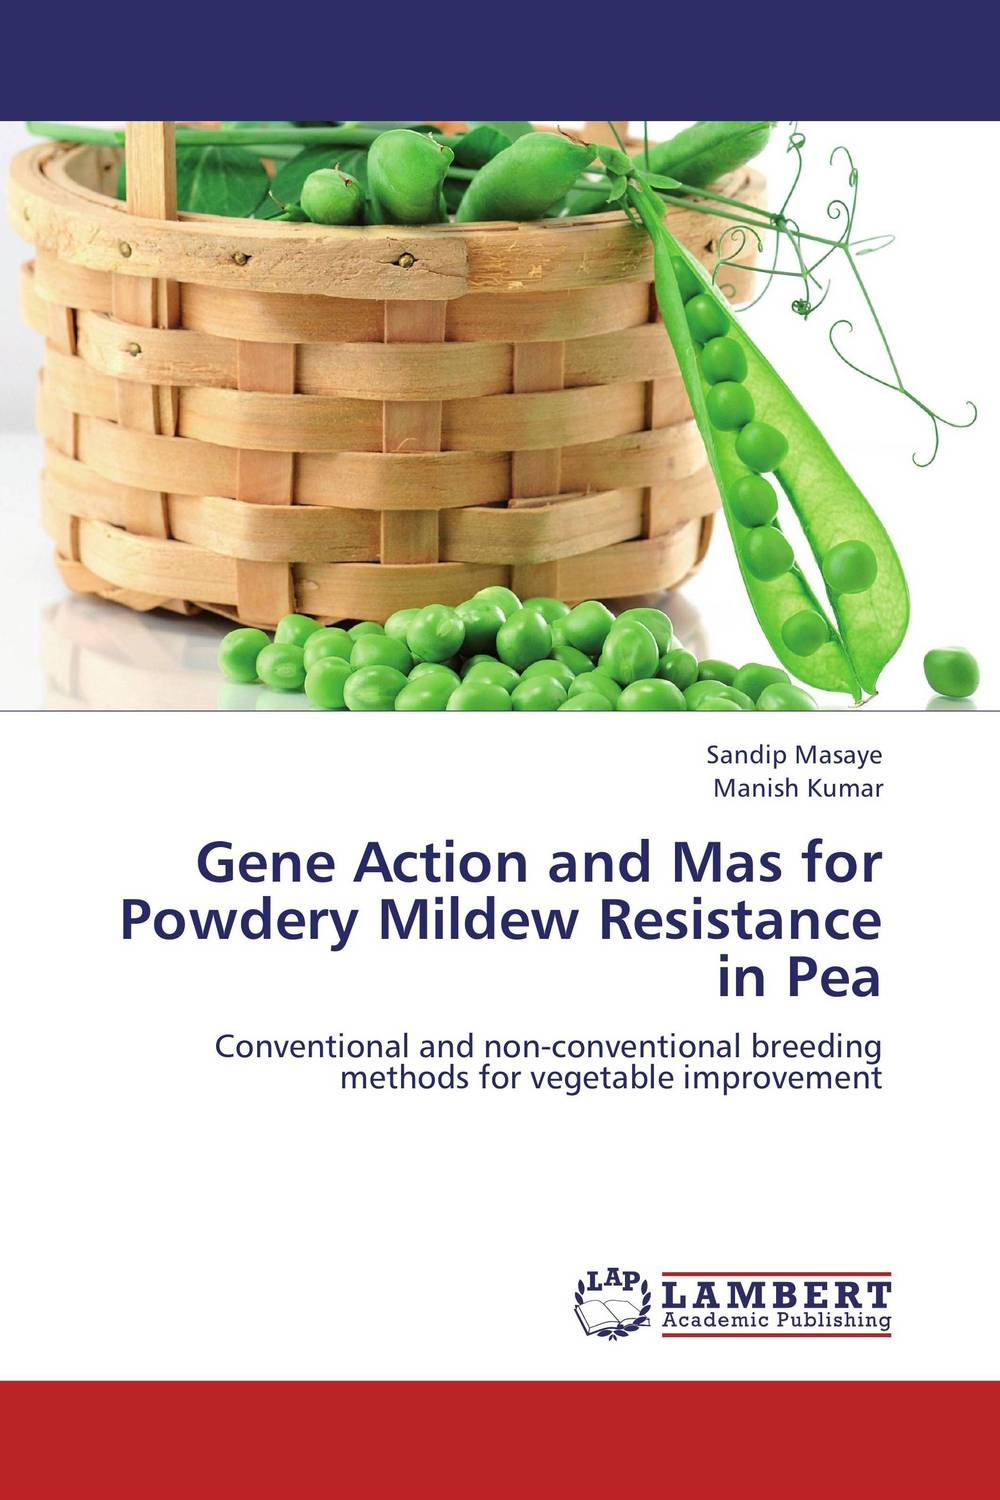 Gene Action and Mas for Powdery Mildew Resistance in Pea